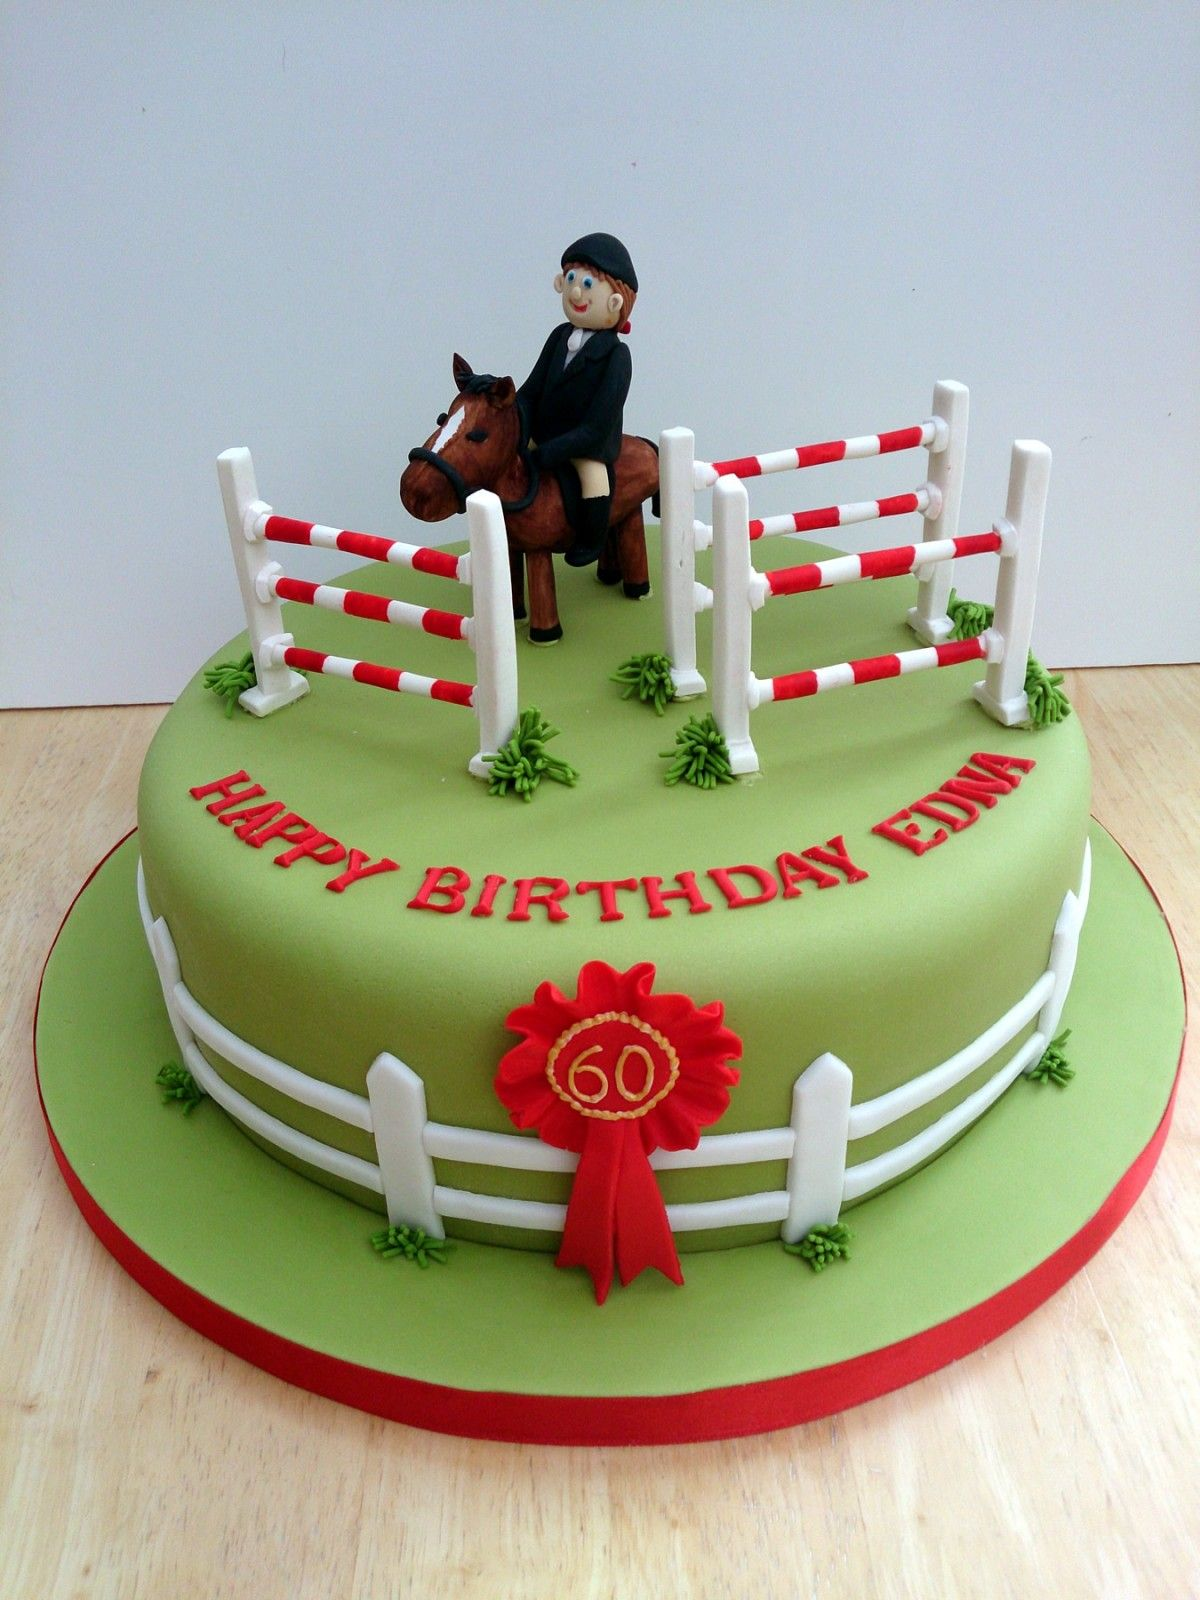 a cake saying happy birthday edna with a woman on a horse and some fences